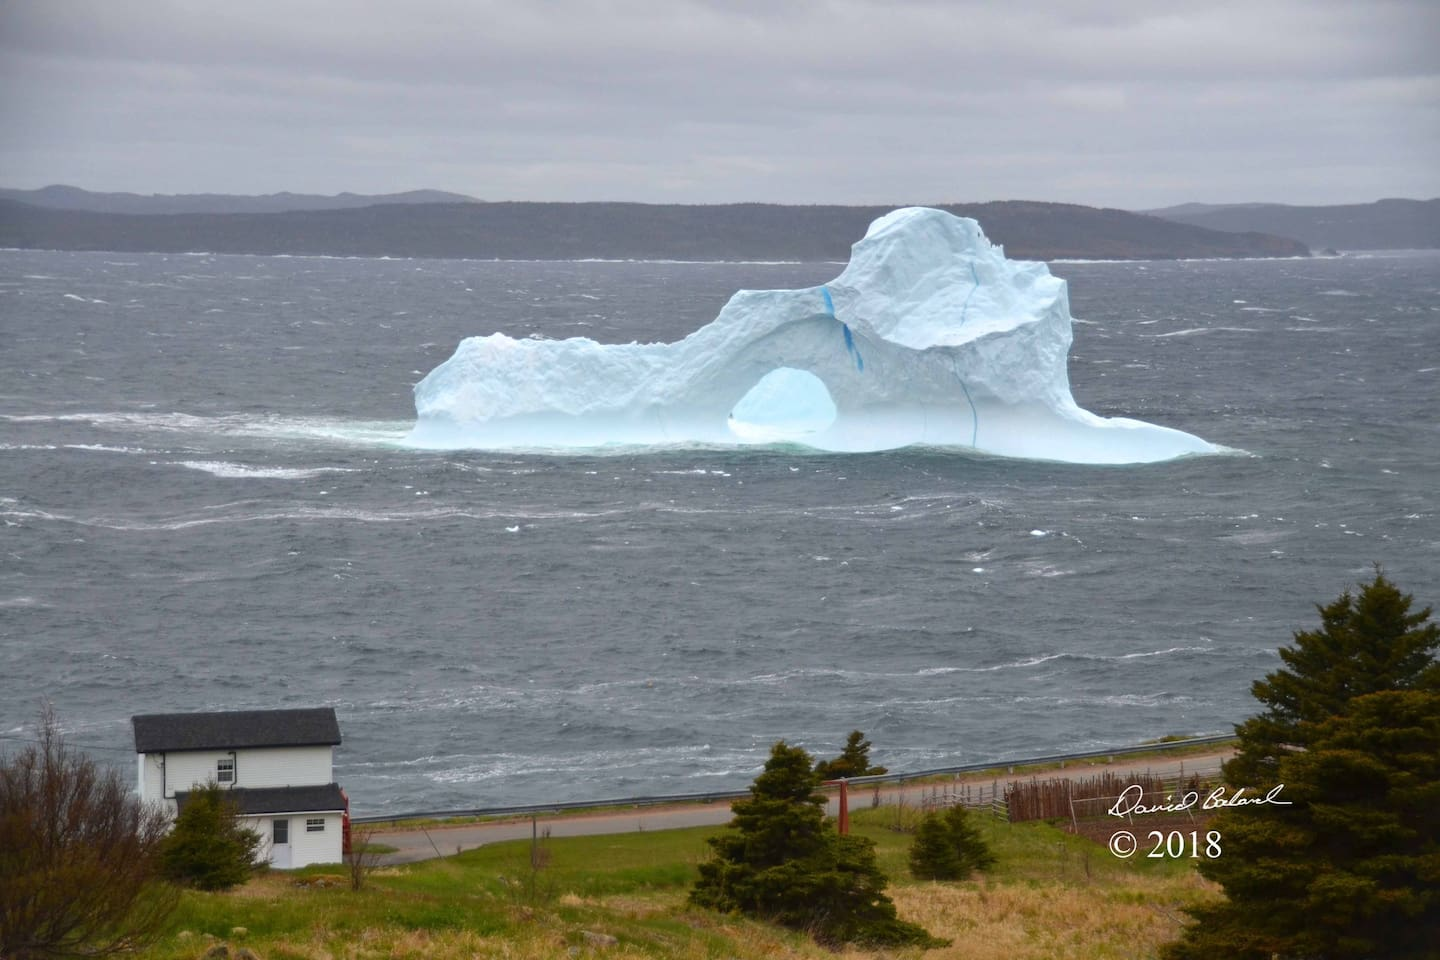 This photo is from June 4, 2018. My house is the bottom left, closest to the ocean. WHAT an iceberg!